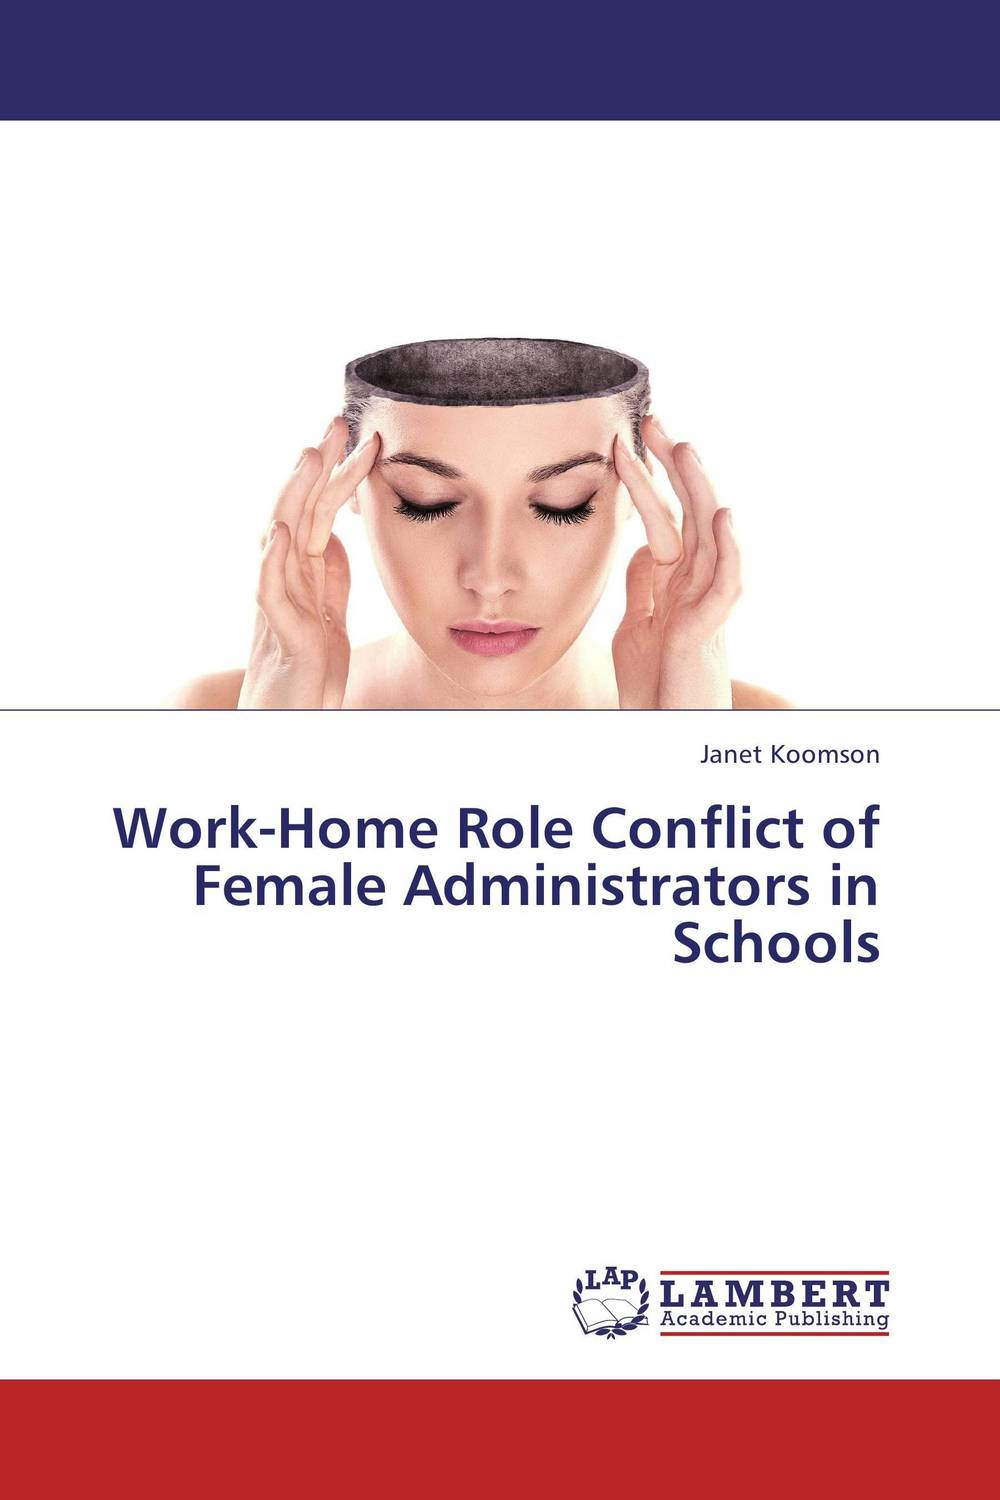 Work-Home Role Conflict of Female Administrators in Schools sadiq sagheer job stress role conflict work life balance impacts on sales personnel